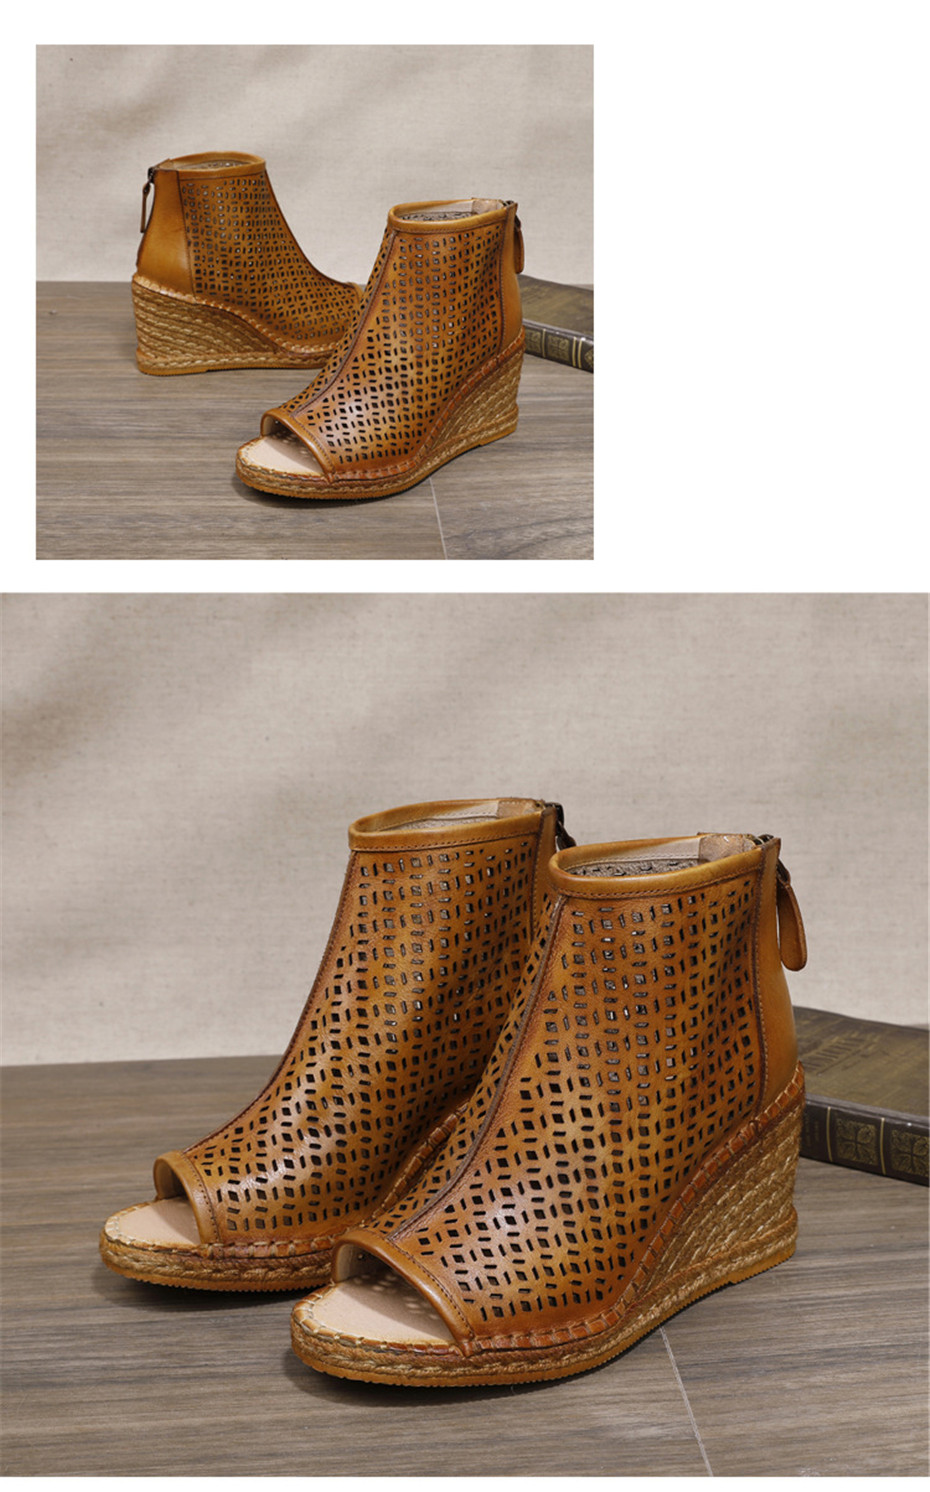 Spring Summer 2020 New Women Wedges Sandals Genuine Leather Peep Toe Hollow Woven High Wedge Heels Shoes Woman High-Top Sandals (2)